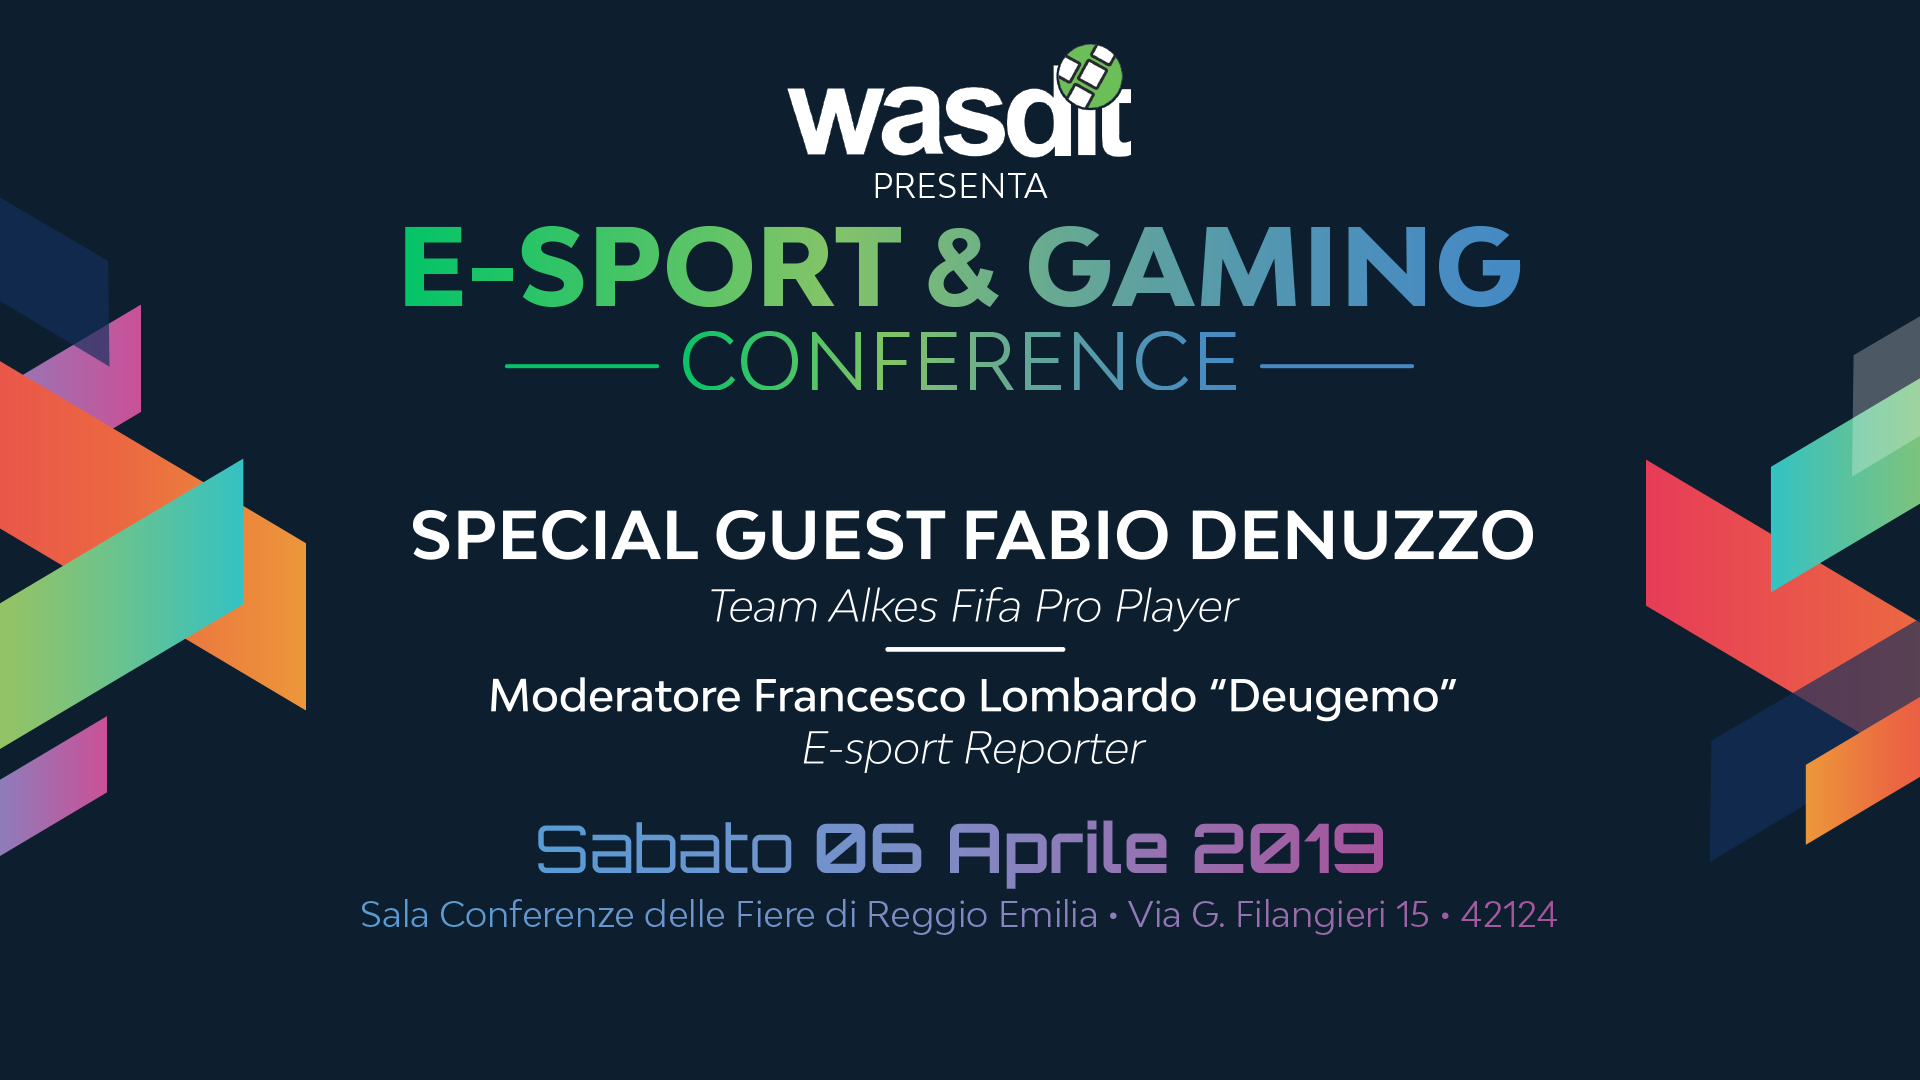 E-SPORT & GAMING CONFERENCE